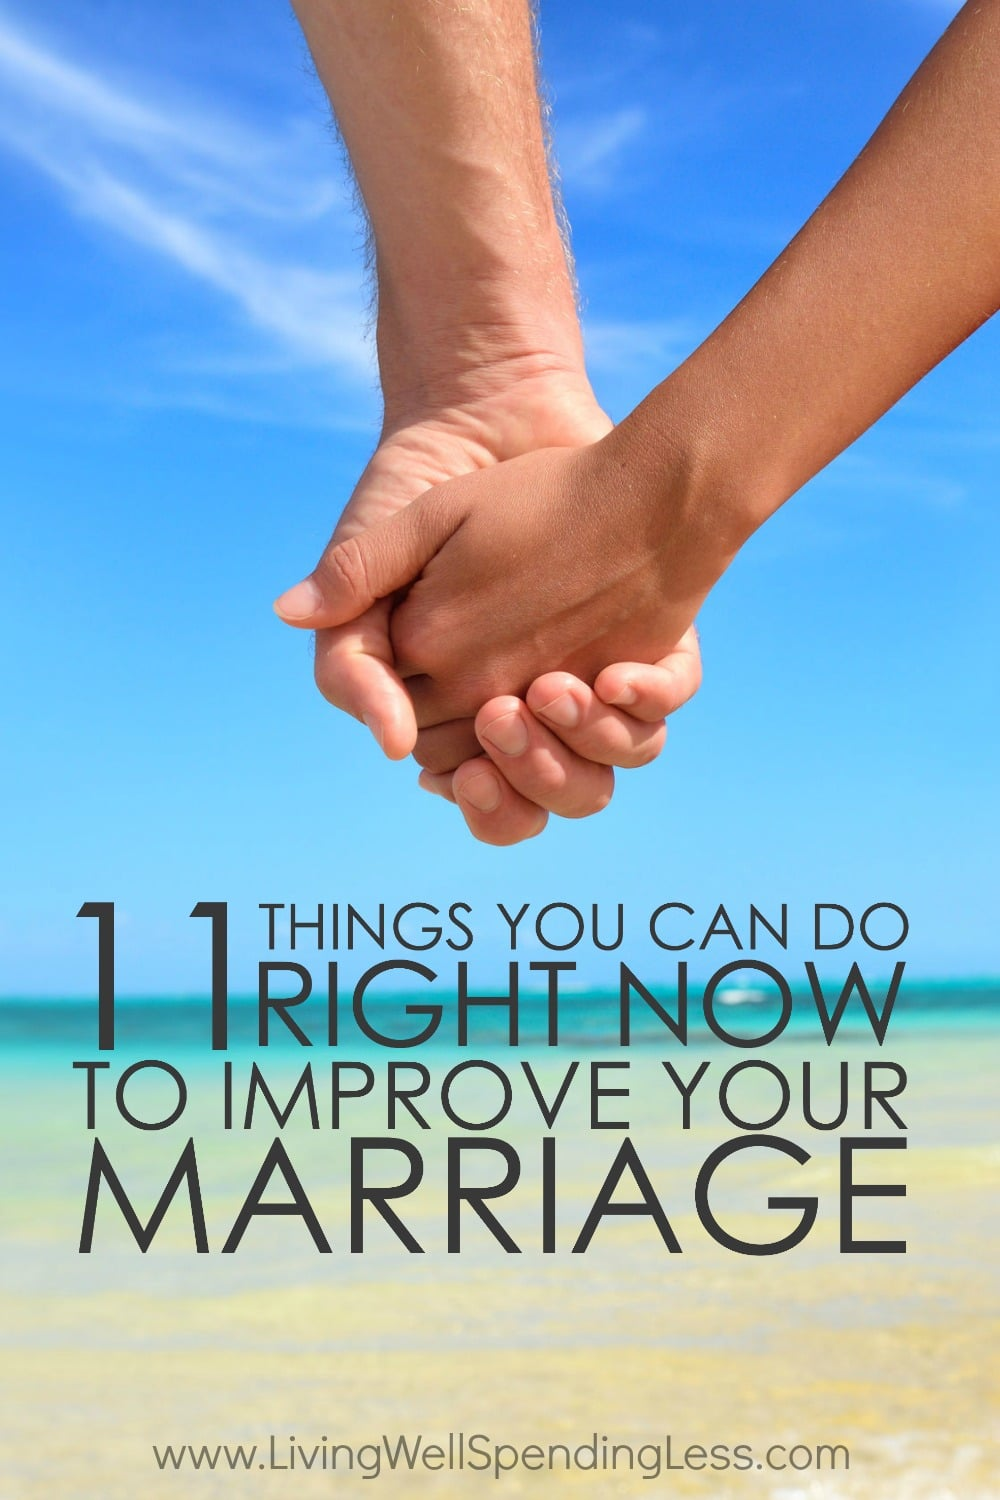 improve-your-marriage-vertical